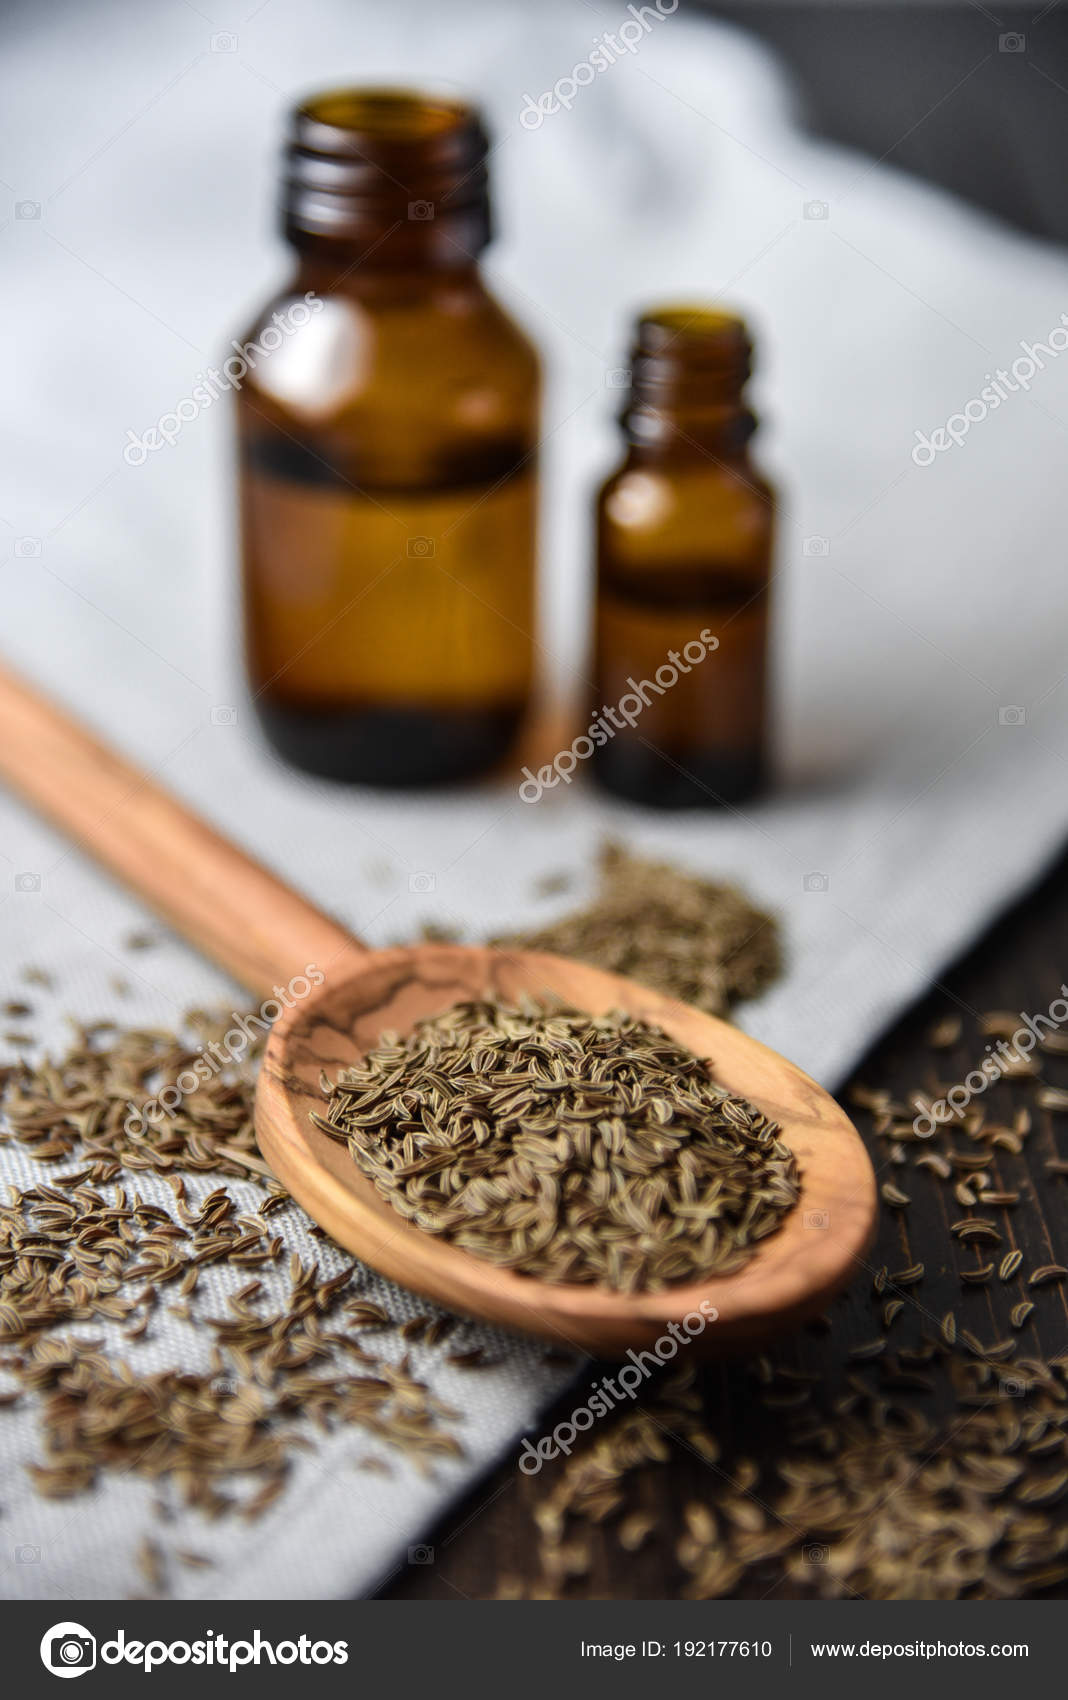 Caraway oil and seeds on wooden spoon and essential oil